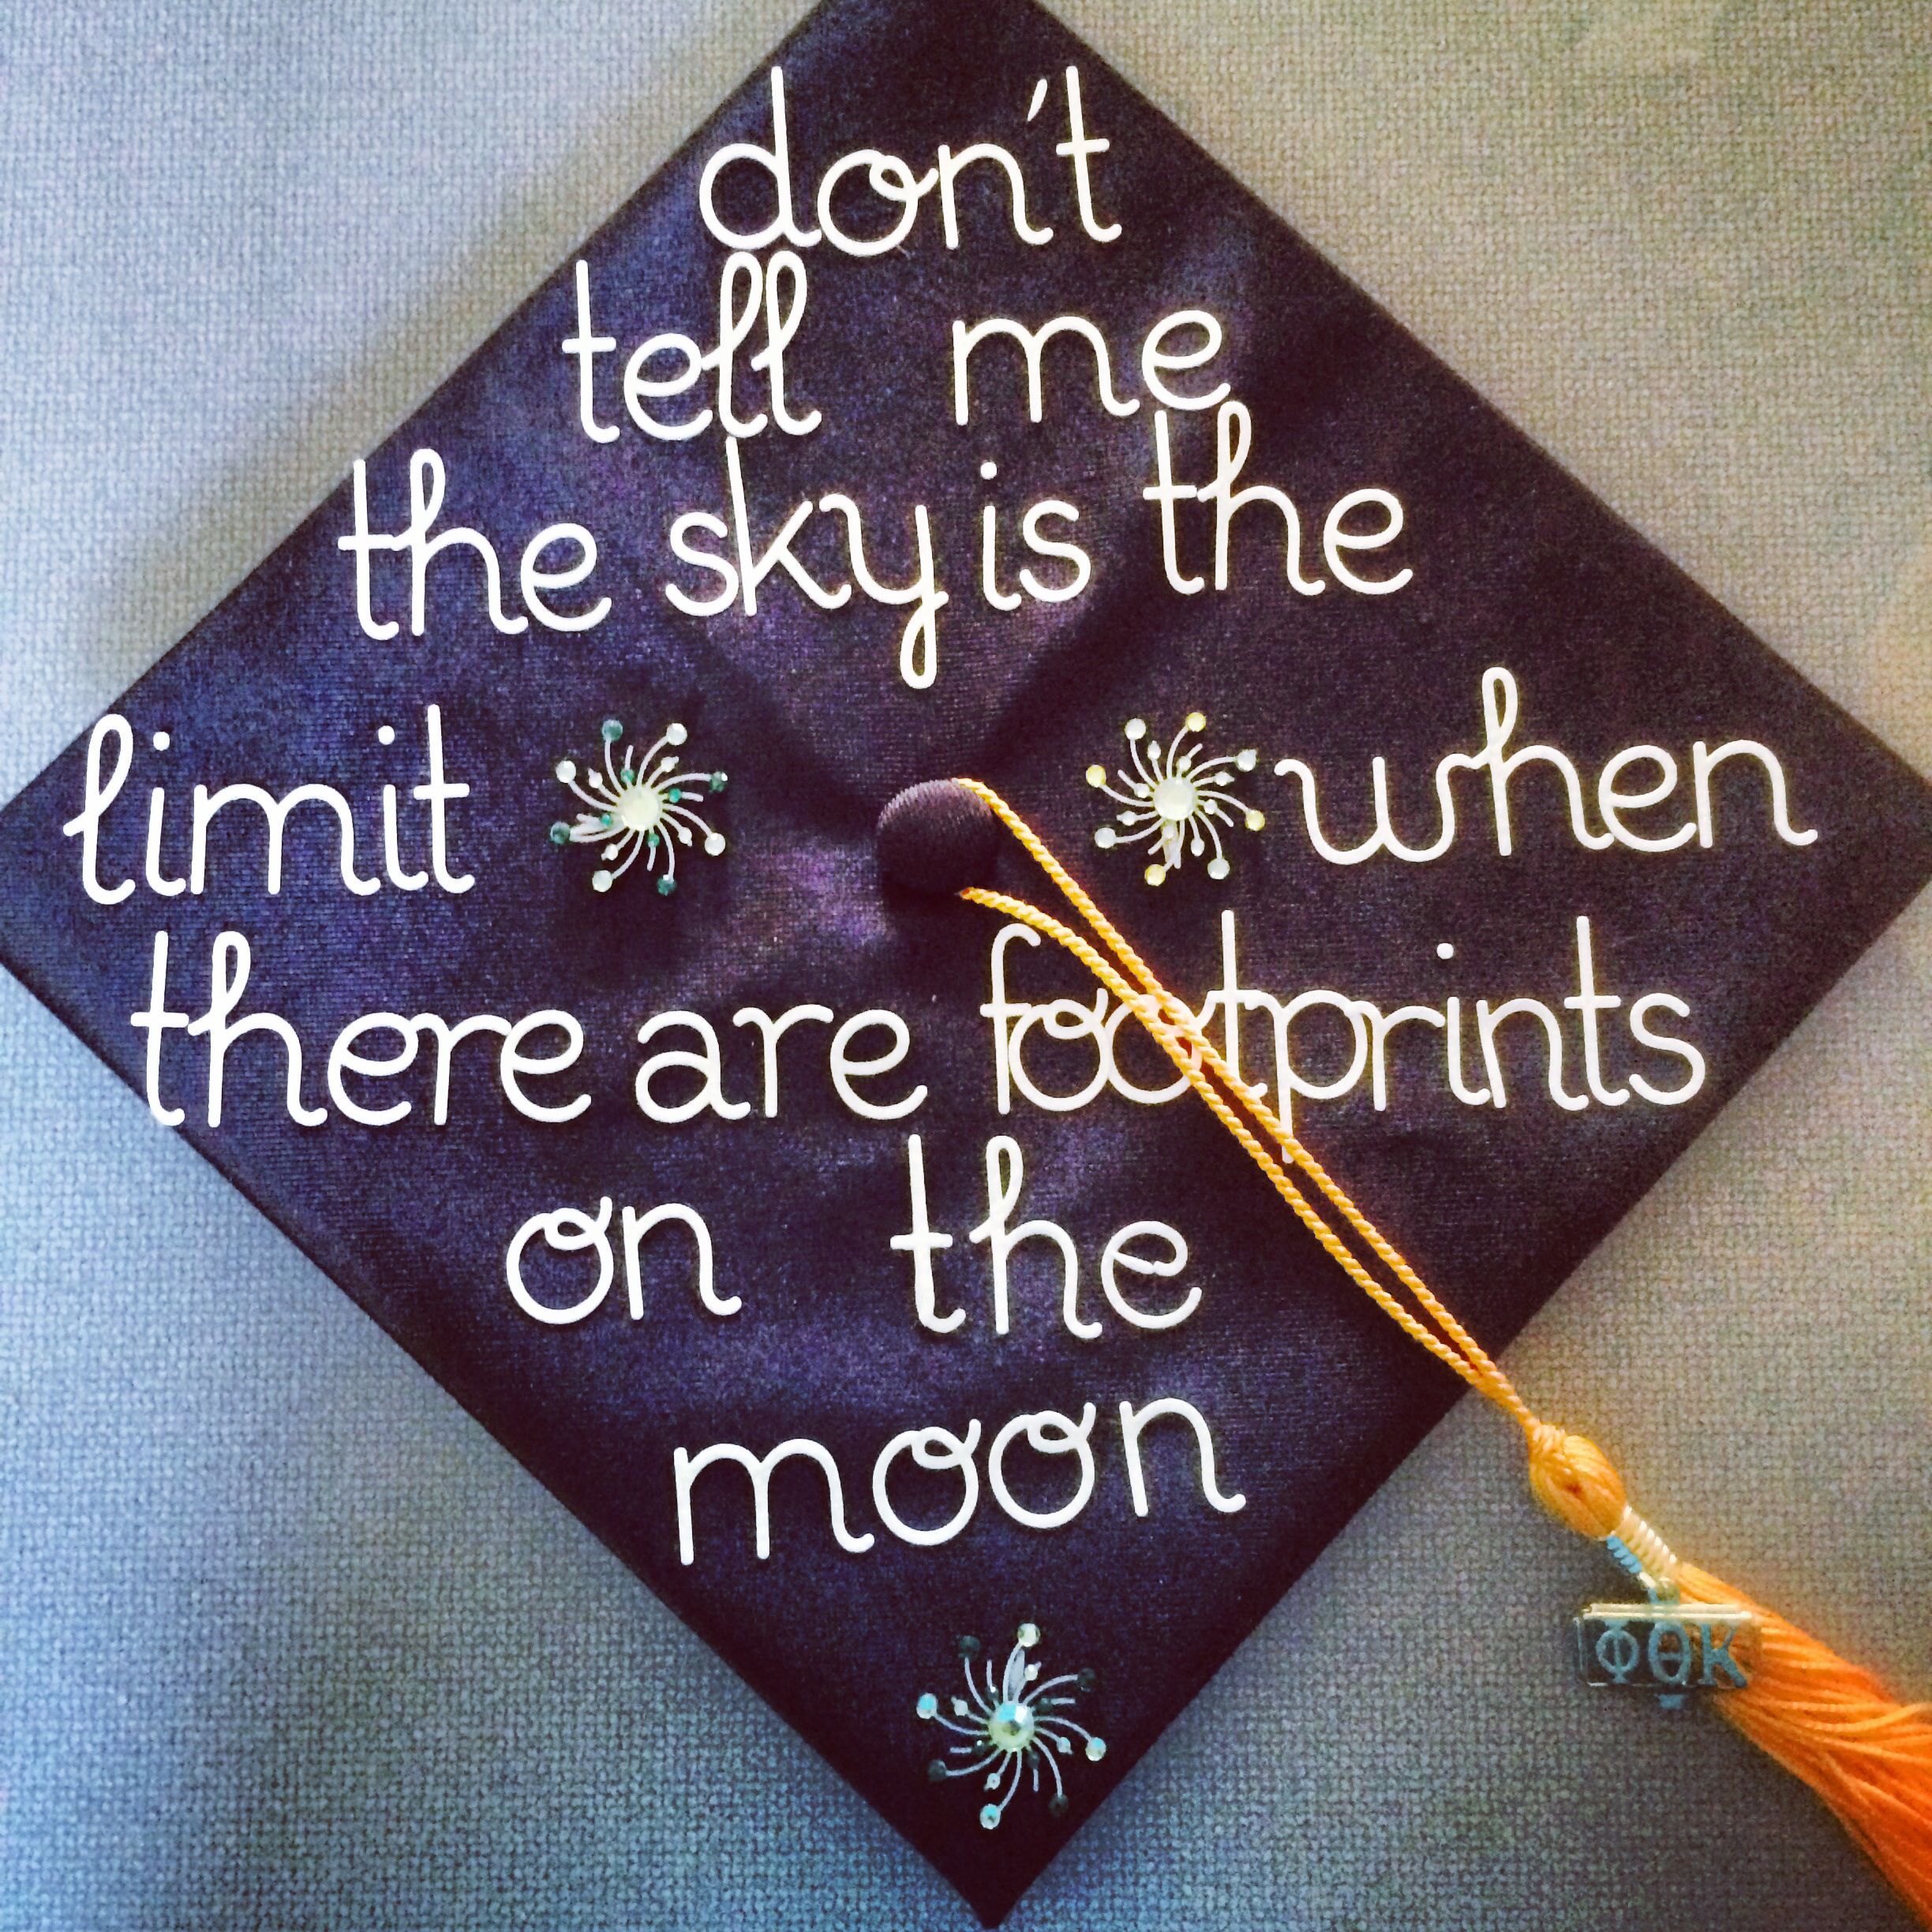 graduation cap design graduation ideas Pinterest